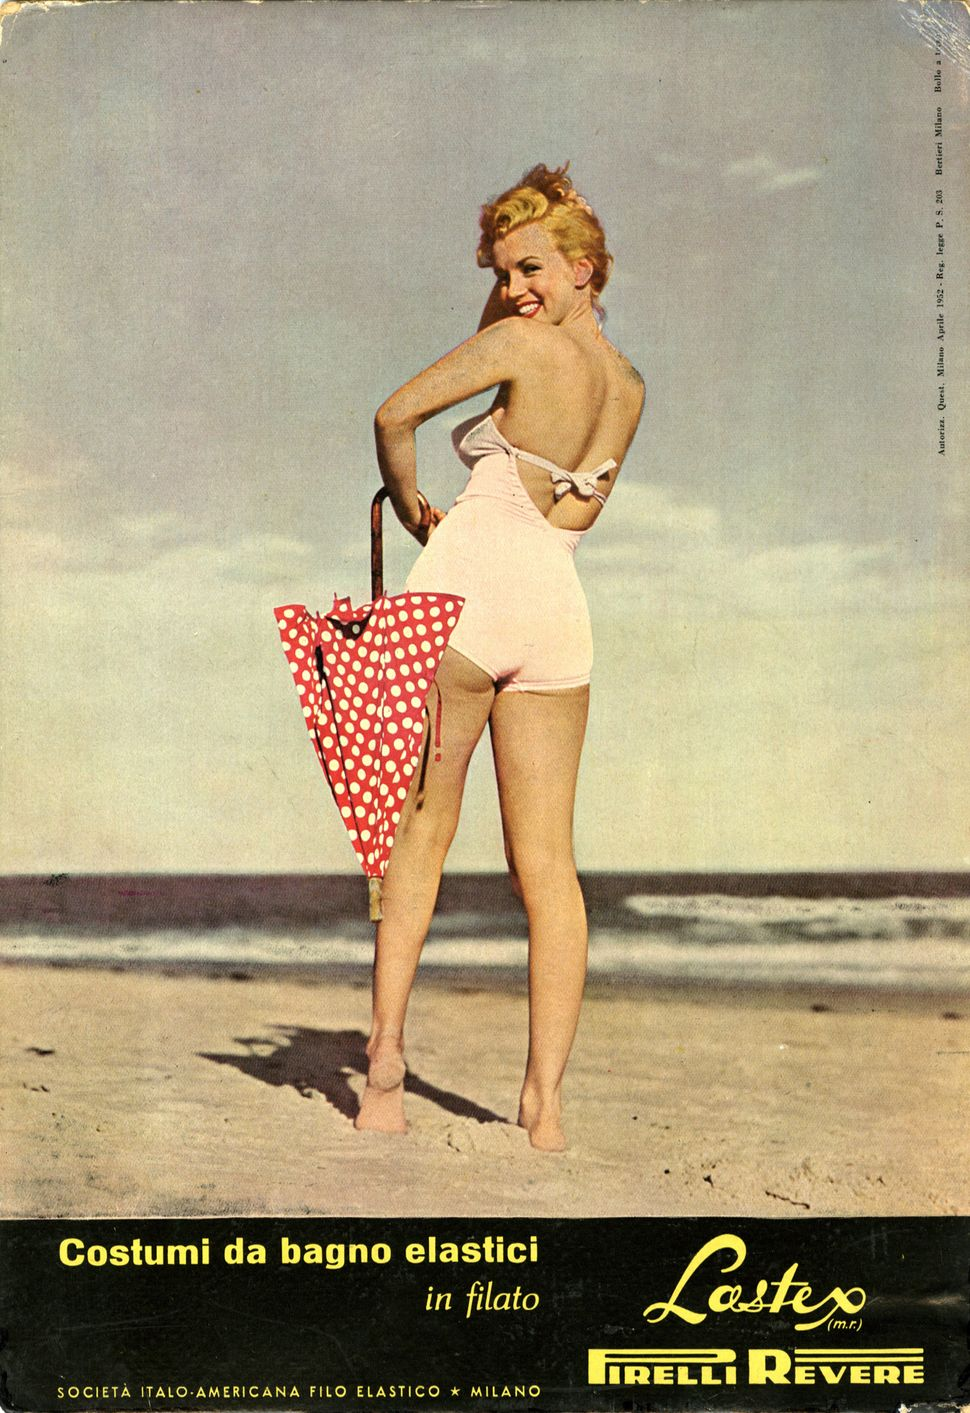 Marilyn Monroe posing for the advertising of Pirelli swimwear. Found in the collection of Fondazione Pirelli, circa 1952.